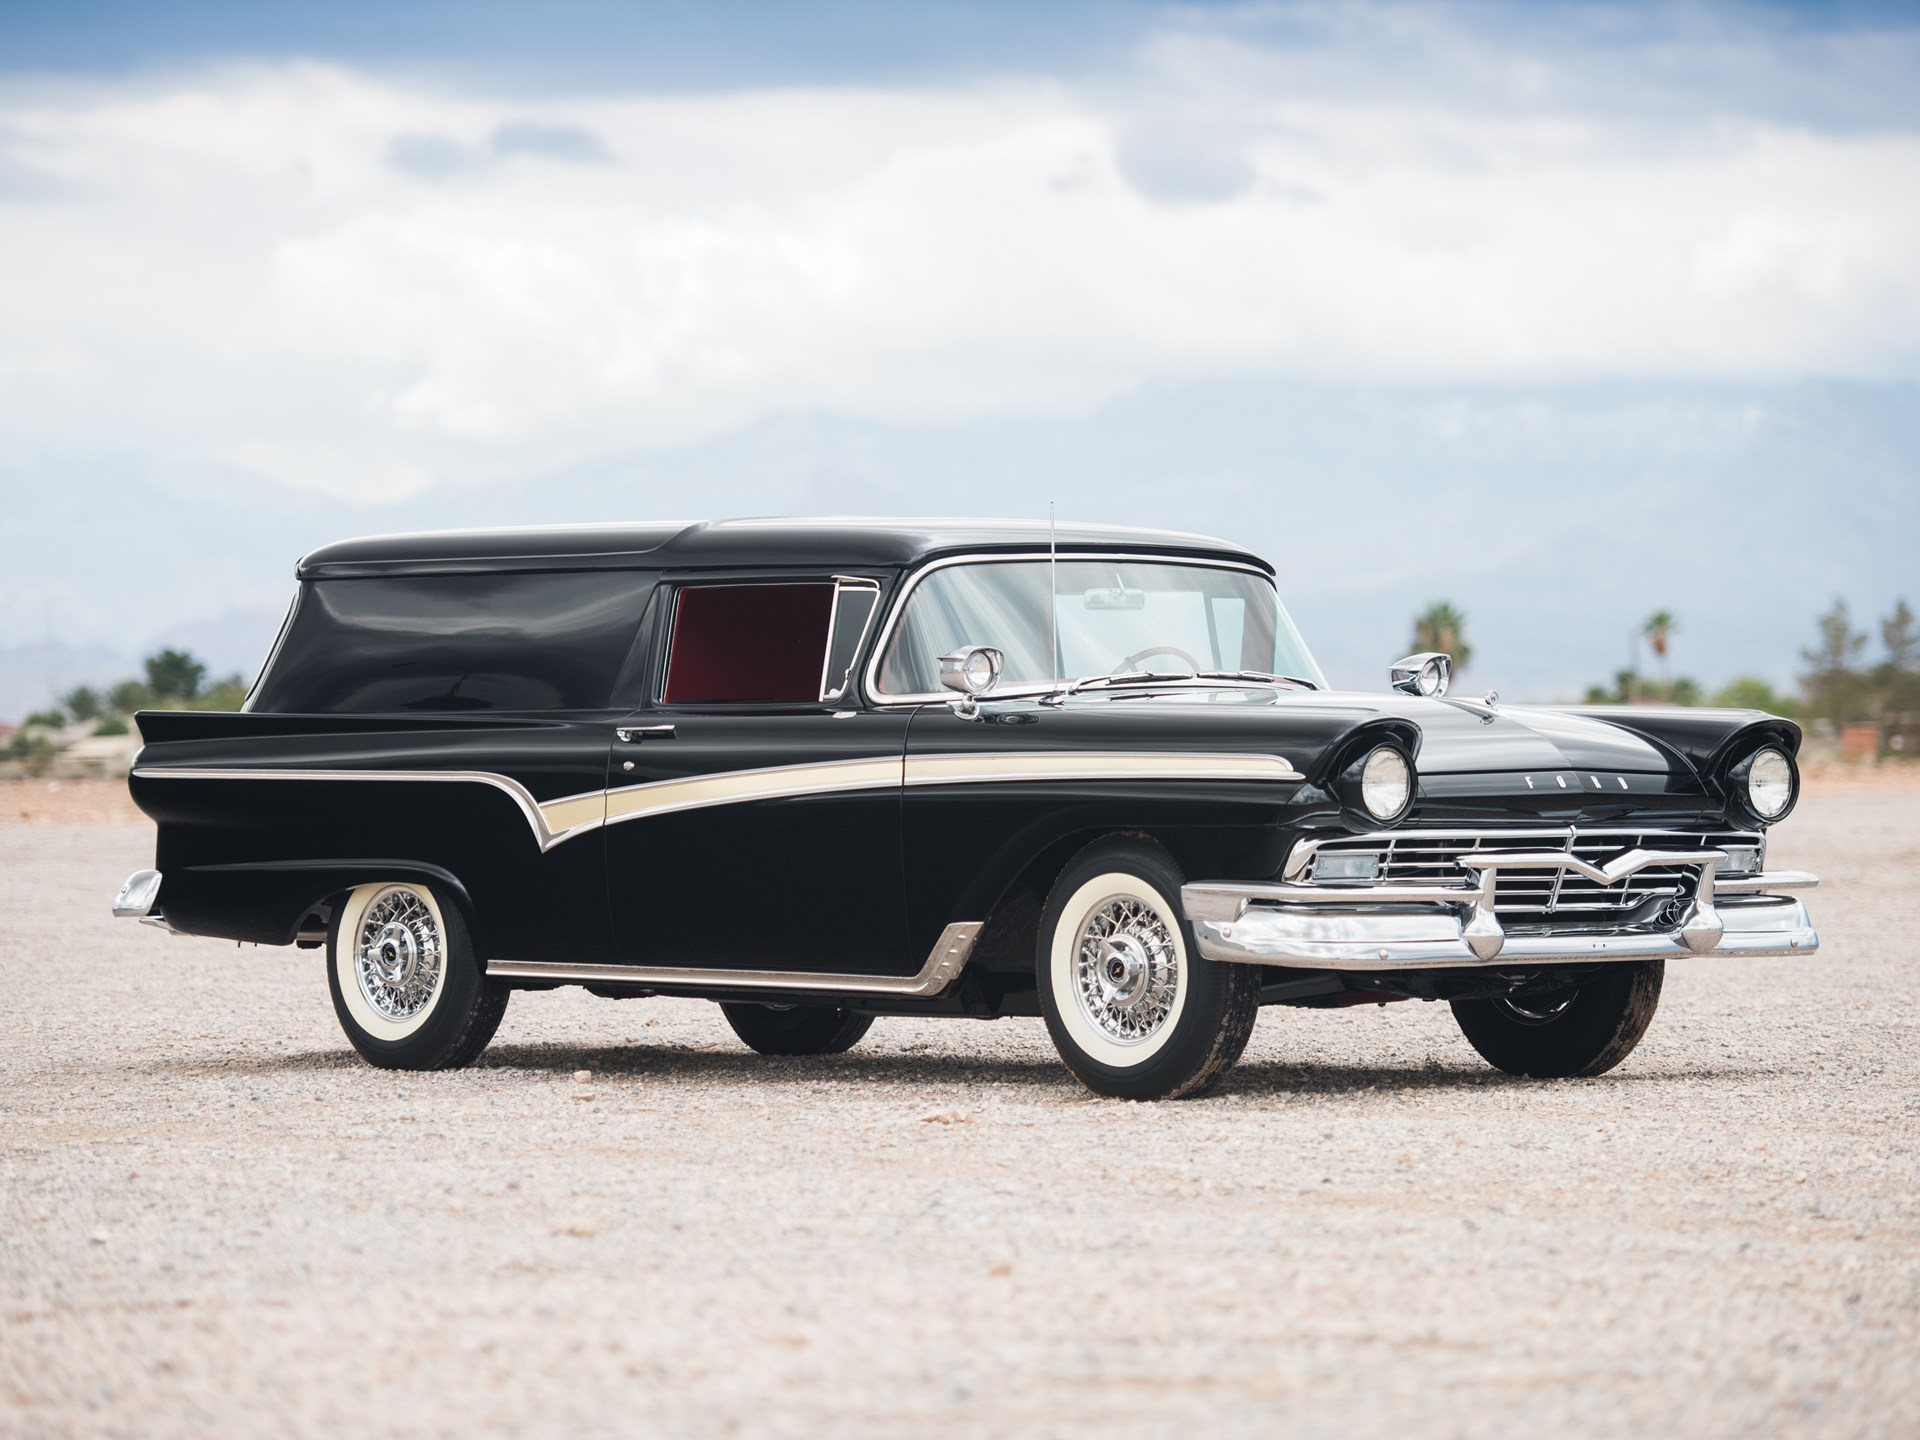 Rm Sothebys 1957 Ford Courier Sedan Delivery Motor City 2016 1951 Chevrolet Deluxe Convertible